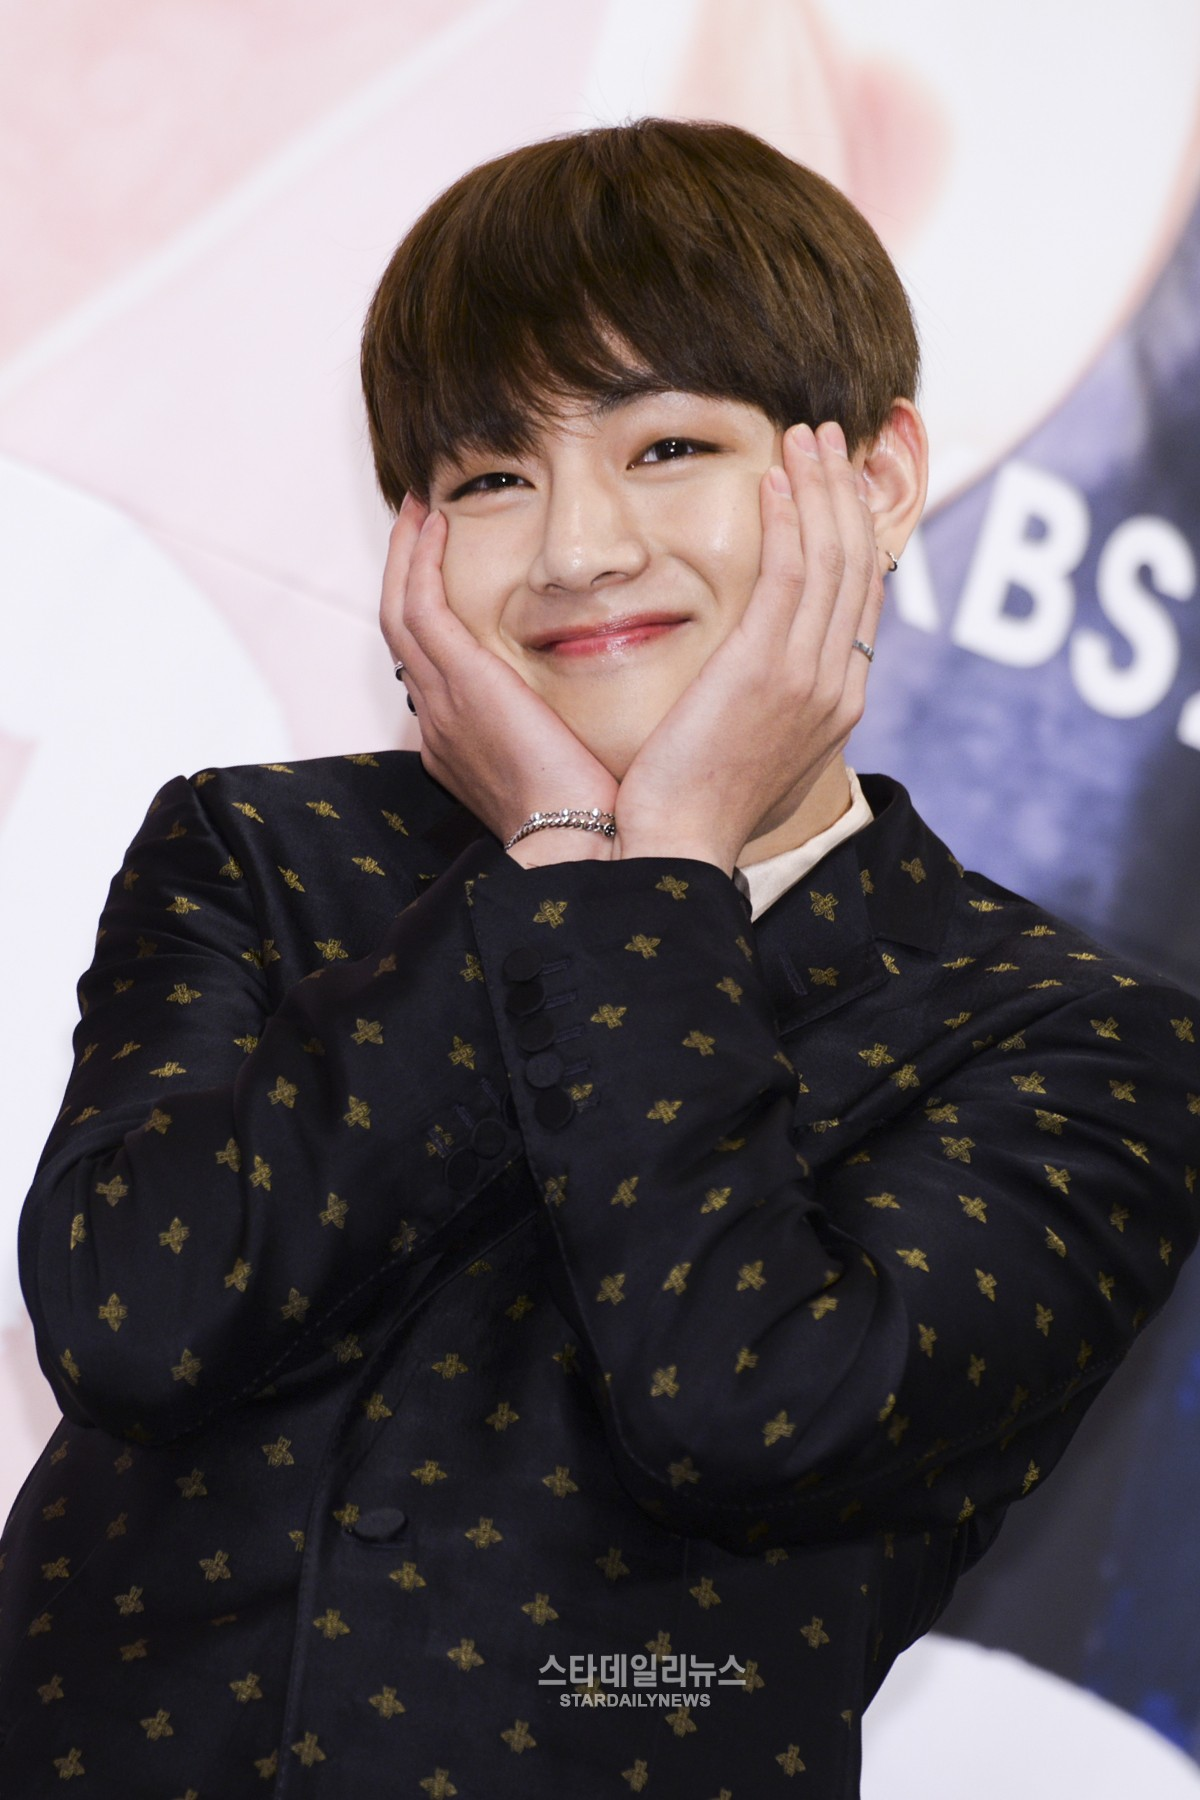 12 Surprising Facts You Probably Never Knew About BTS - Koreaboo